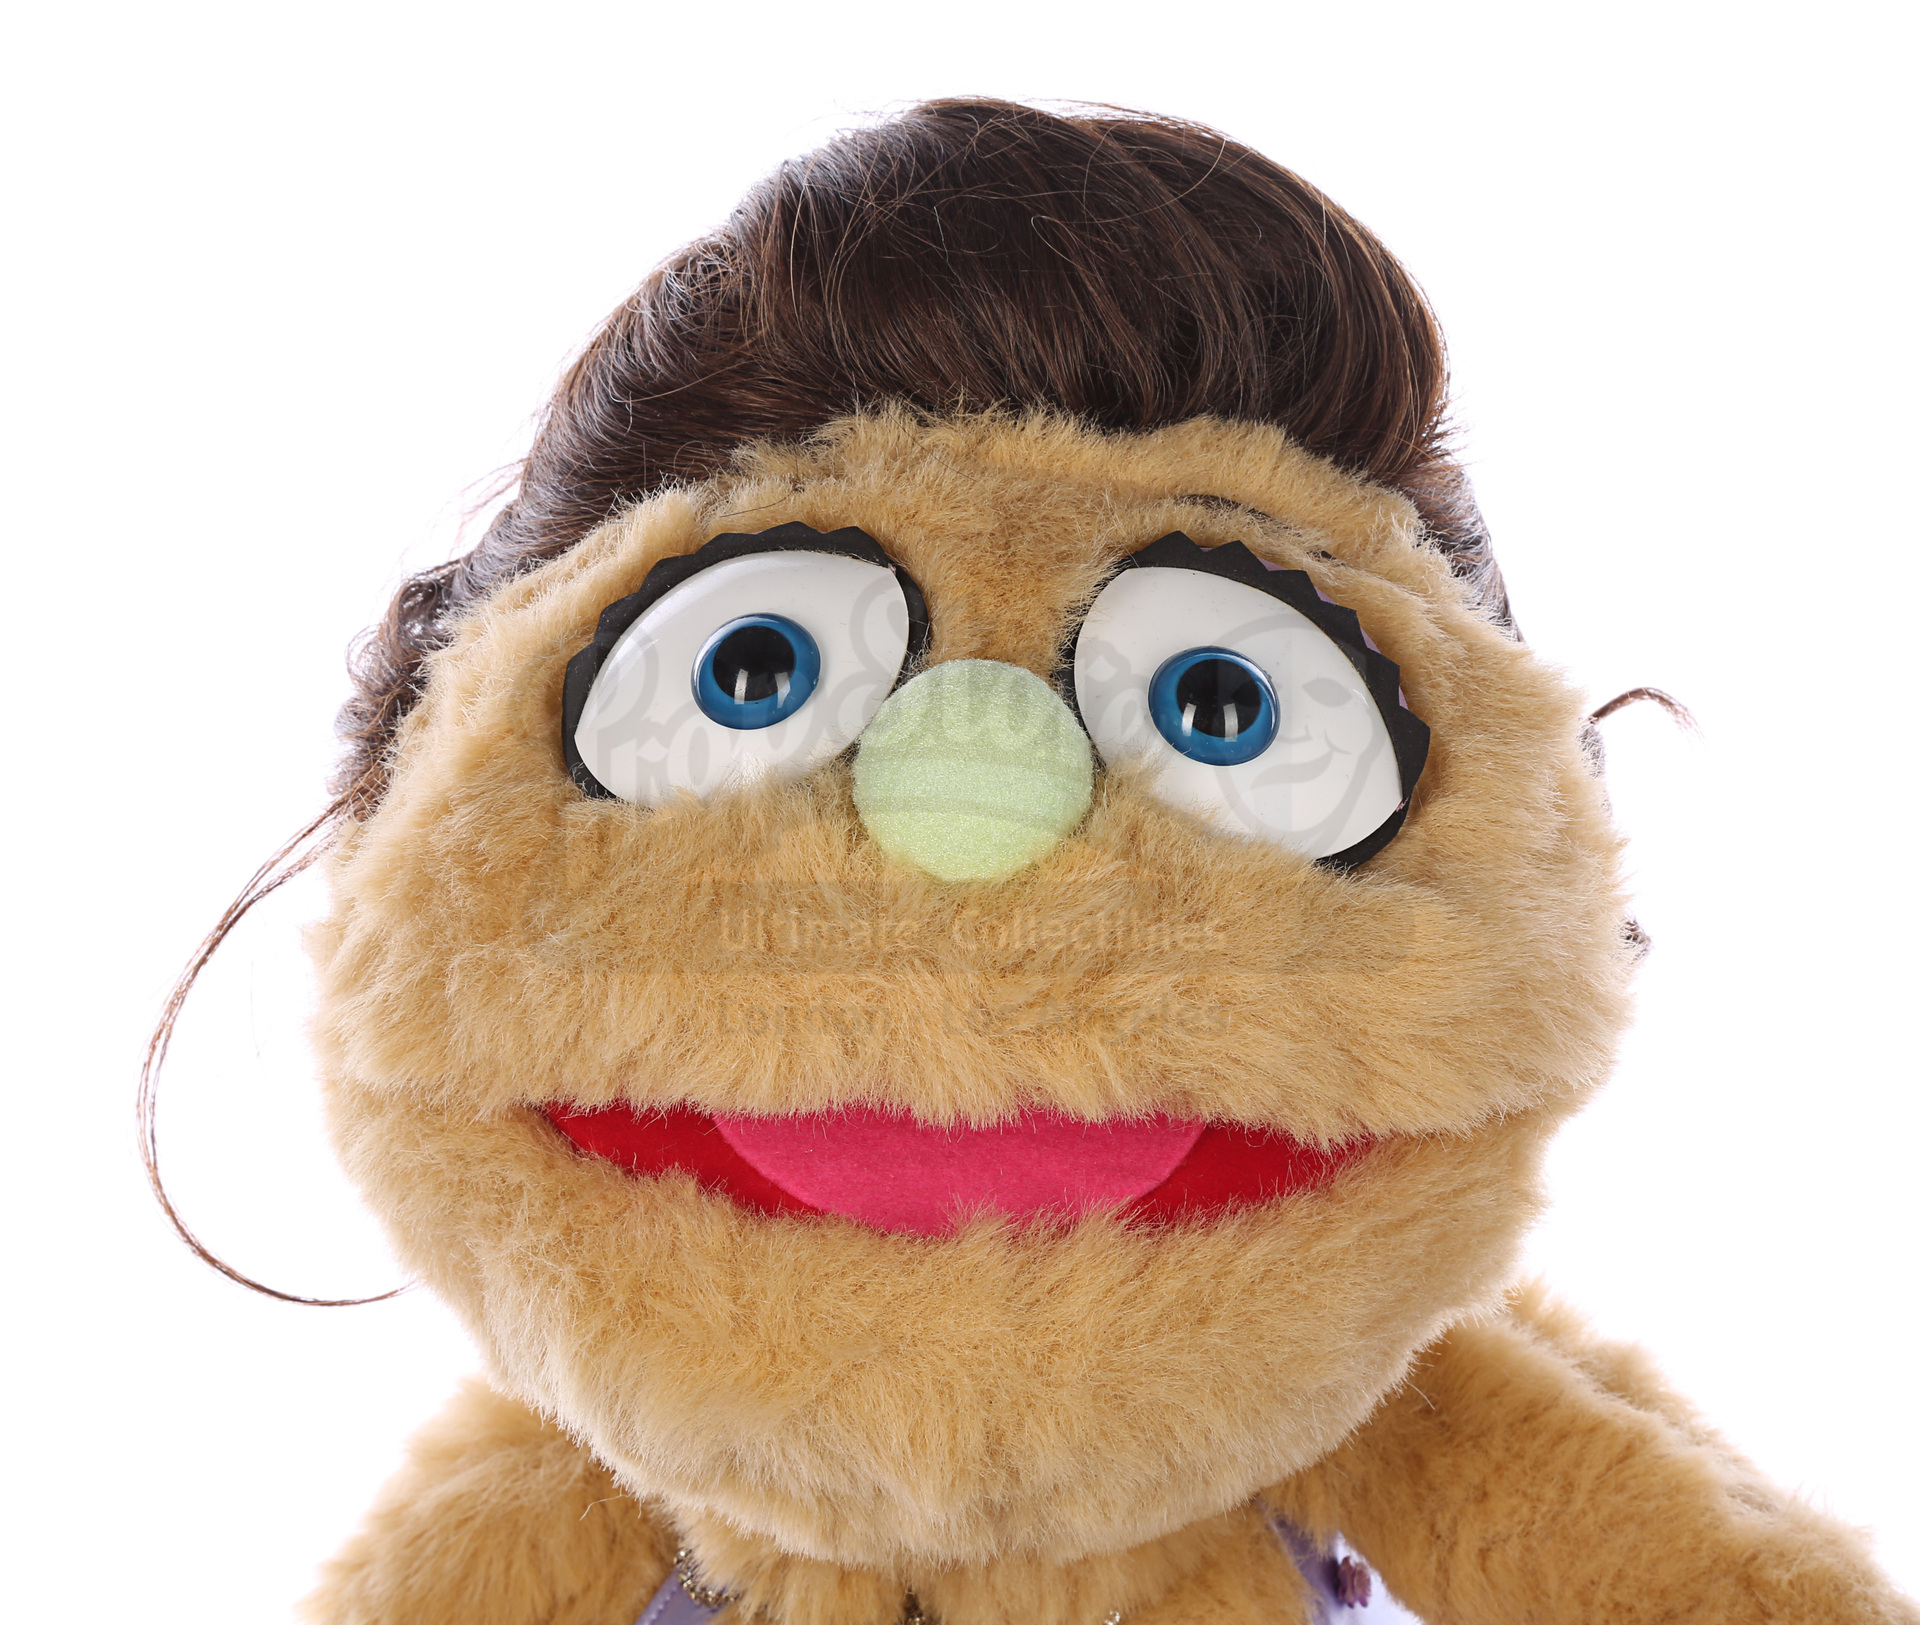 AVENUE Q (STAGE SHOW) - Wedding Puppet Collection: Kate Monster, Nicky, Princeton, Rod, Kate Monster - Image 3 of 23